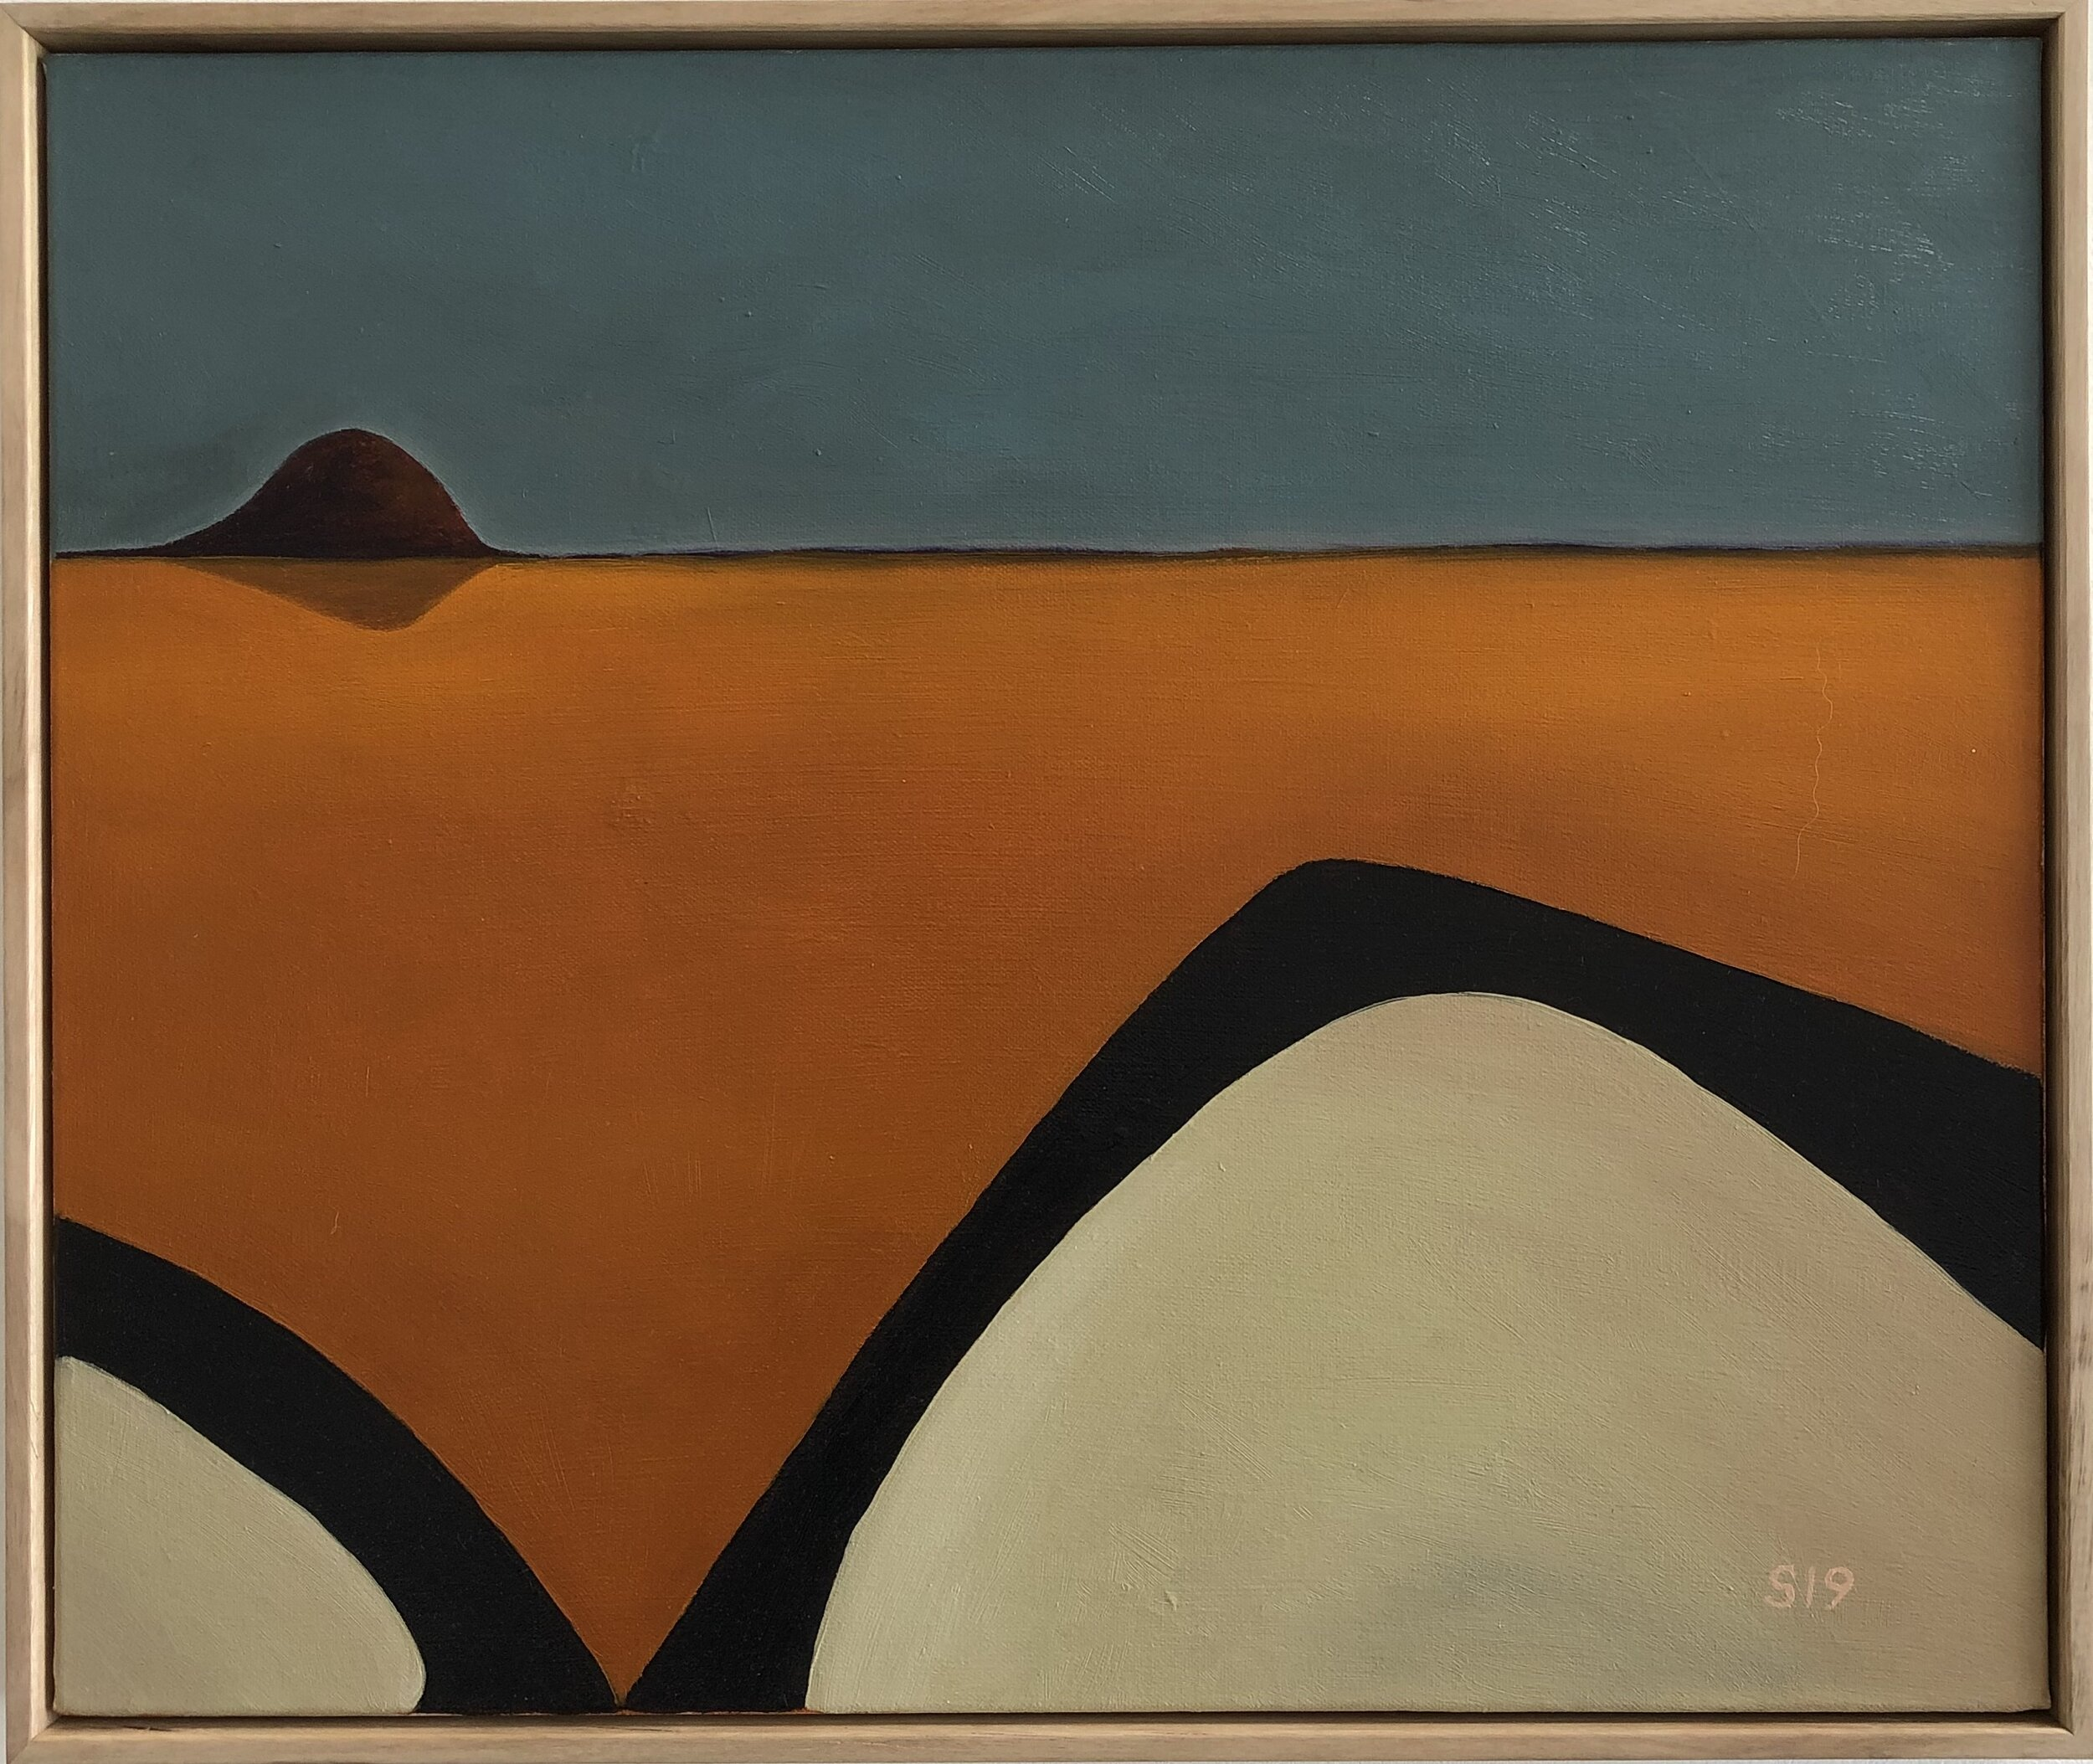 5. Malcolm Sands Wollemi Dreaming 2019 oil on canvas 53x63 framed $650.00